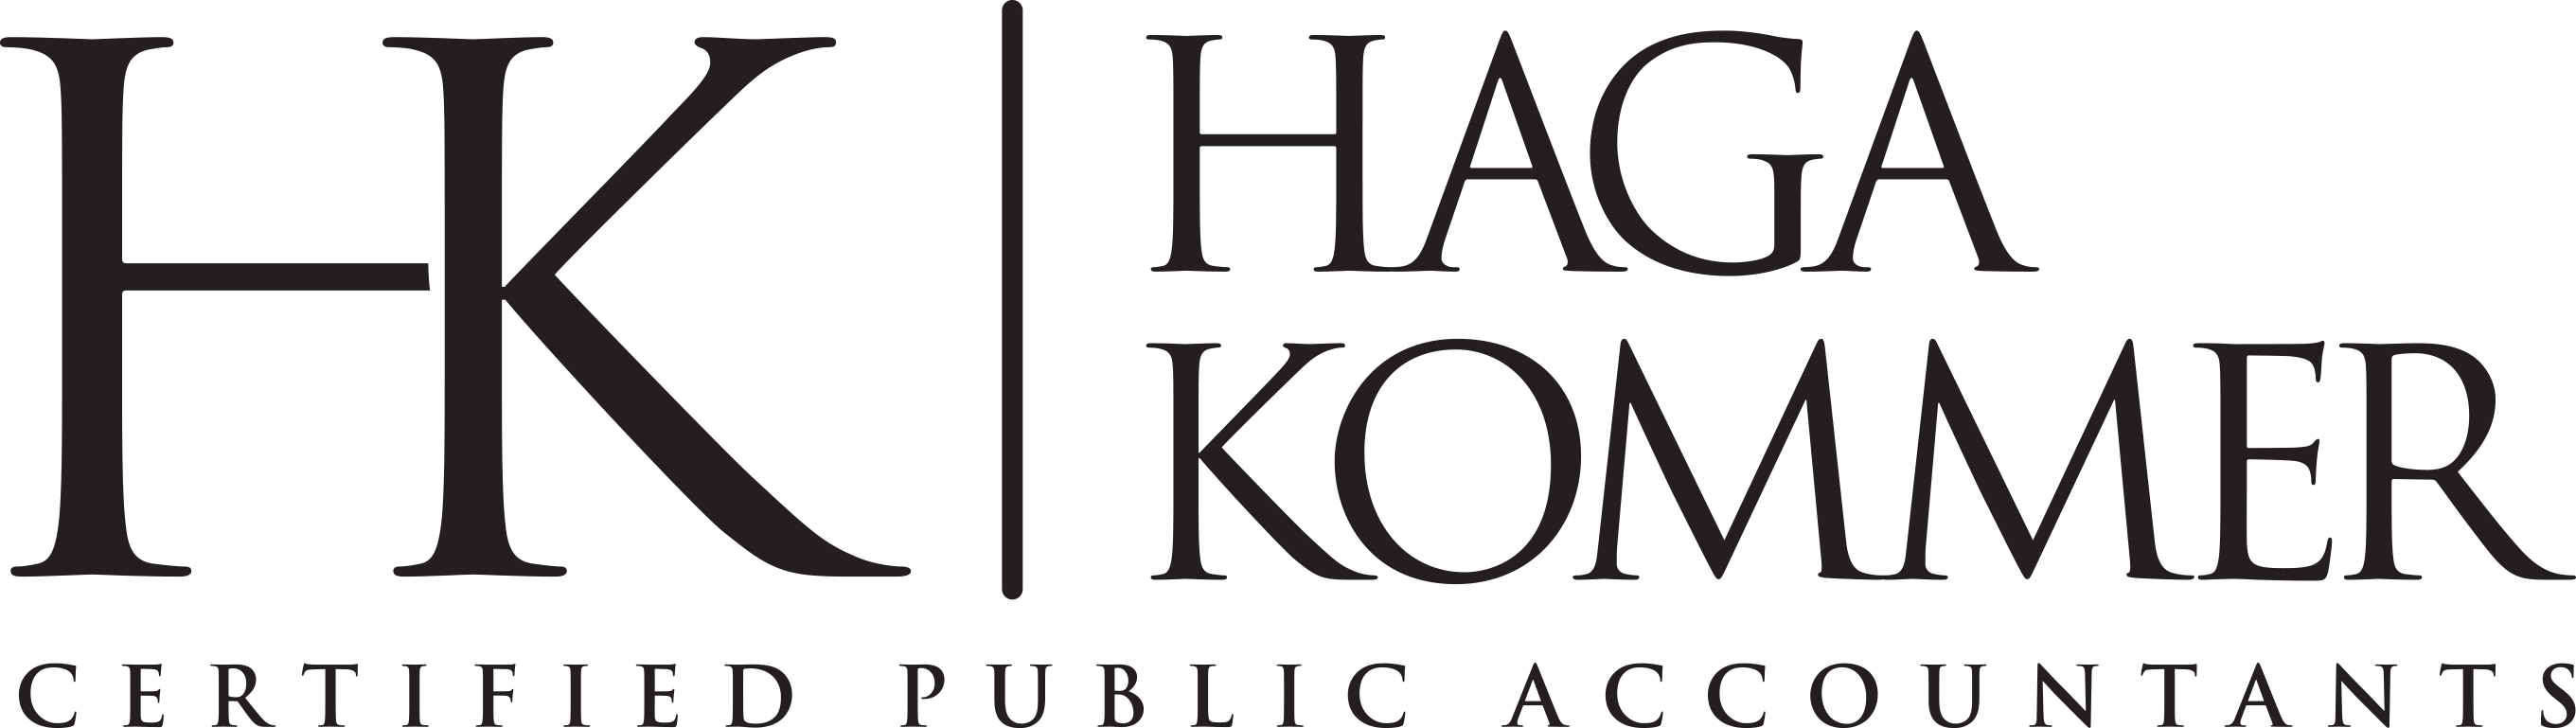 North Dakota CPA Firm | News Page | Haga Kommer, Ltd.